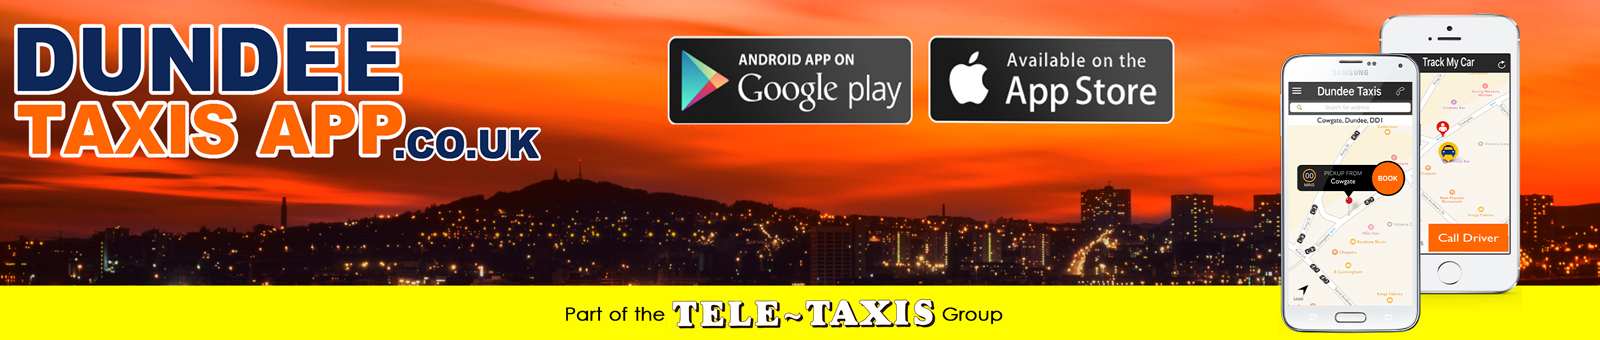 Download Dundee Taxis App